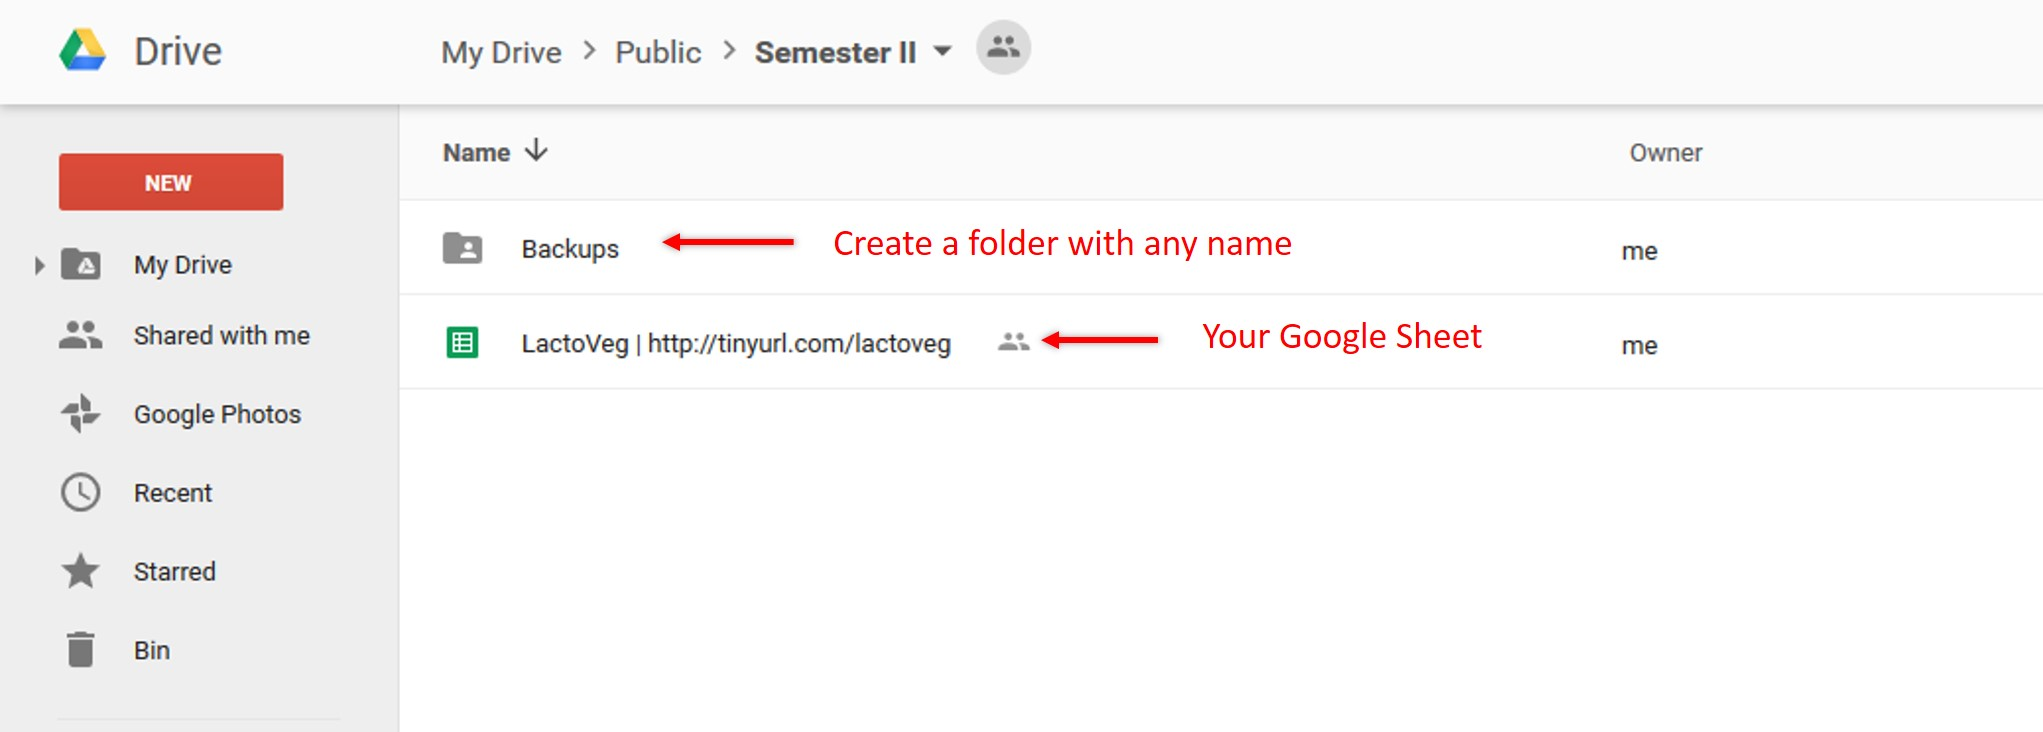 Creating automatic scheduled backup copies of your Google